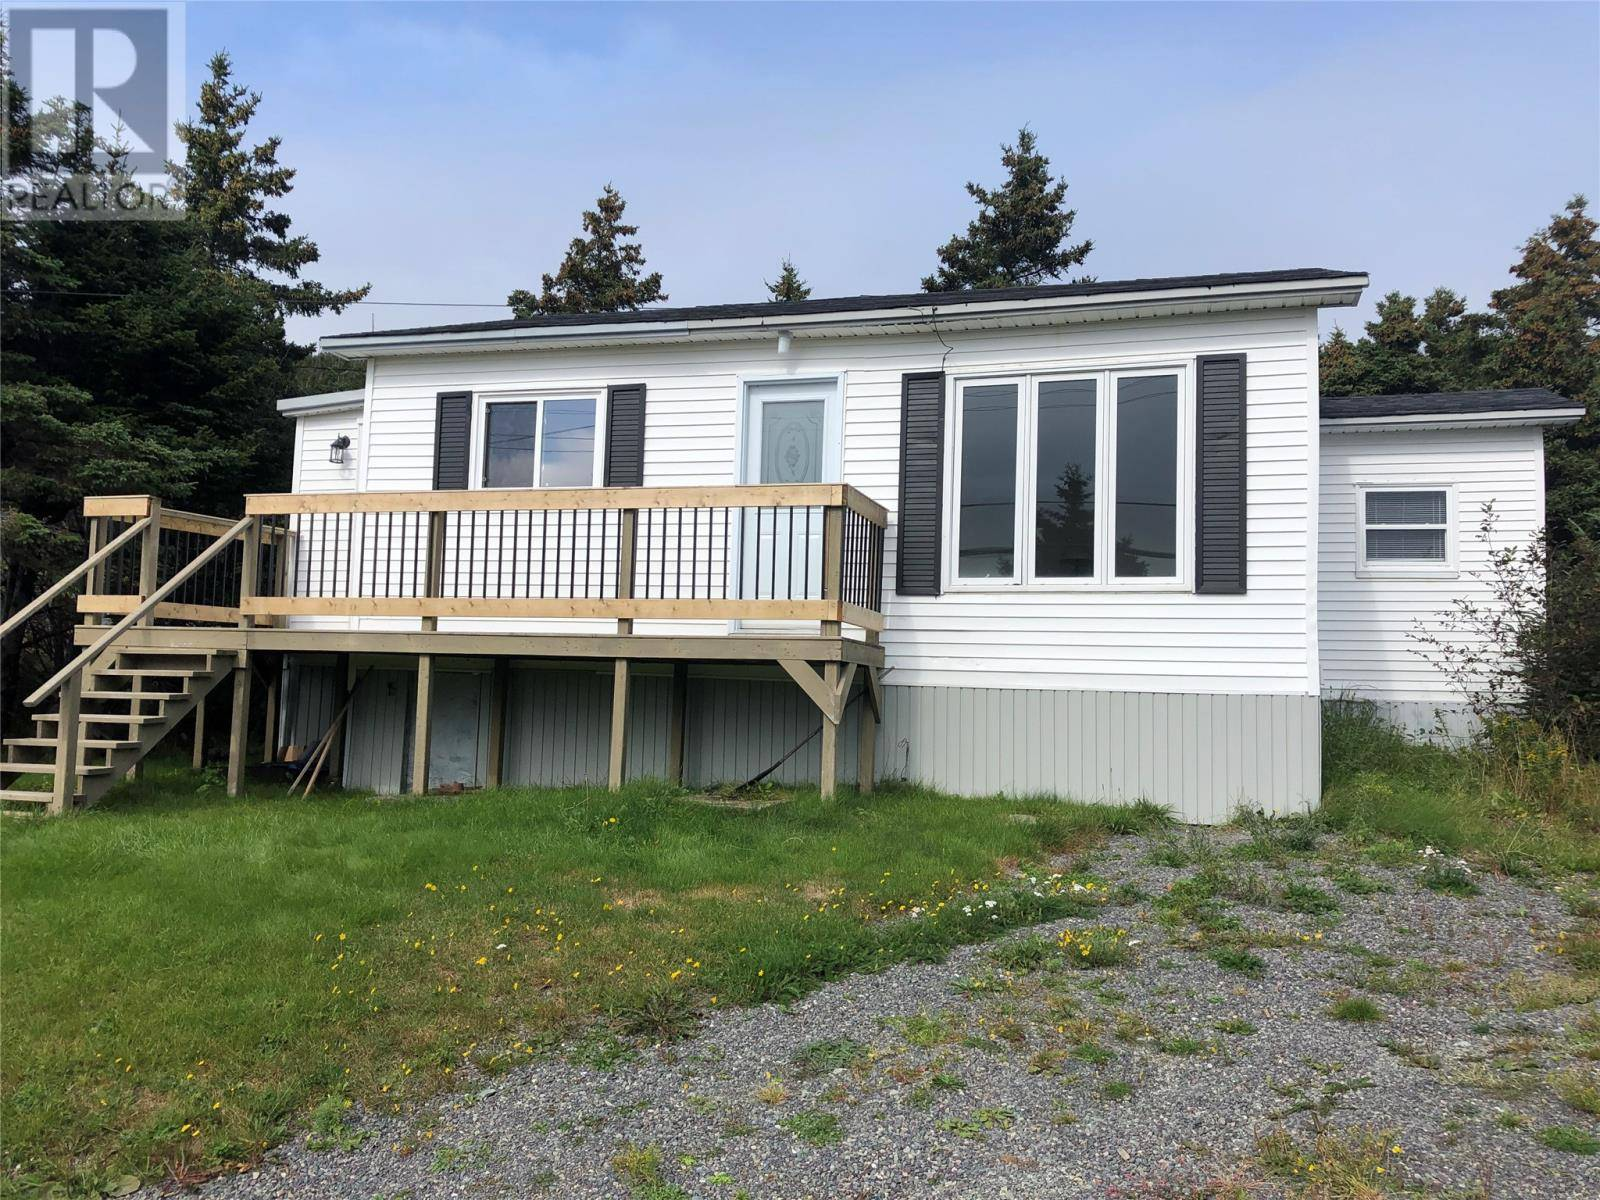 House for sale at 1220 Main Rd Dunvillle Newfoundland - MLS: 1204559